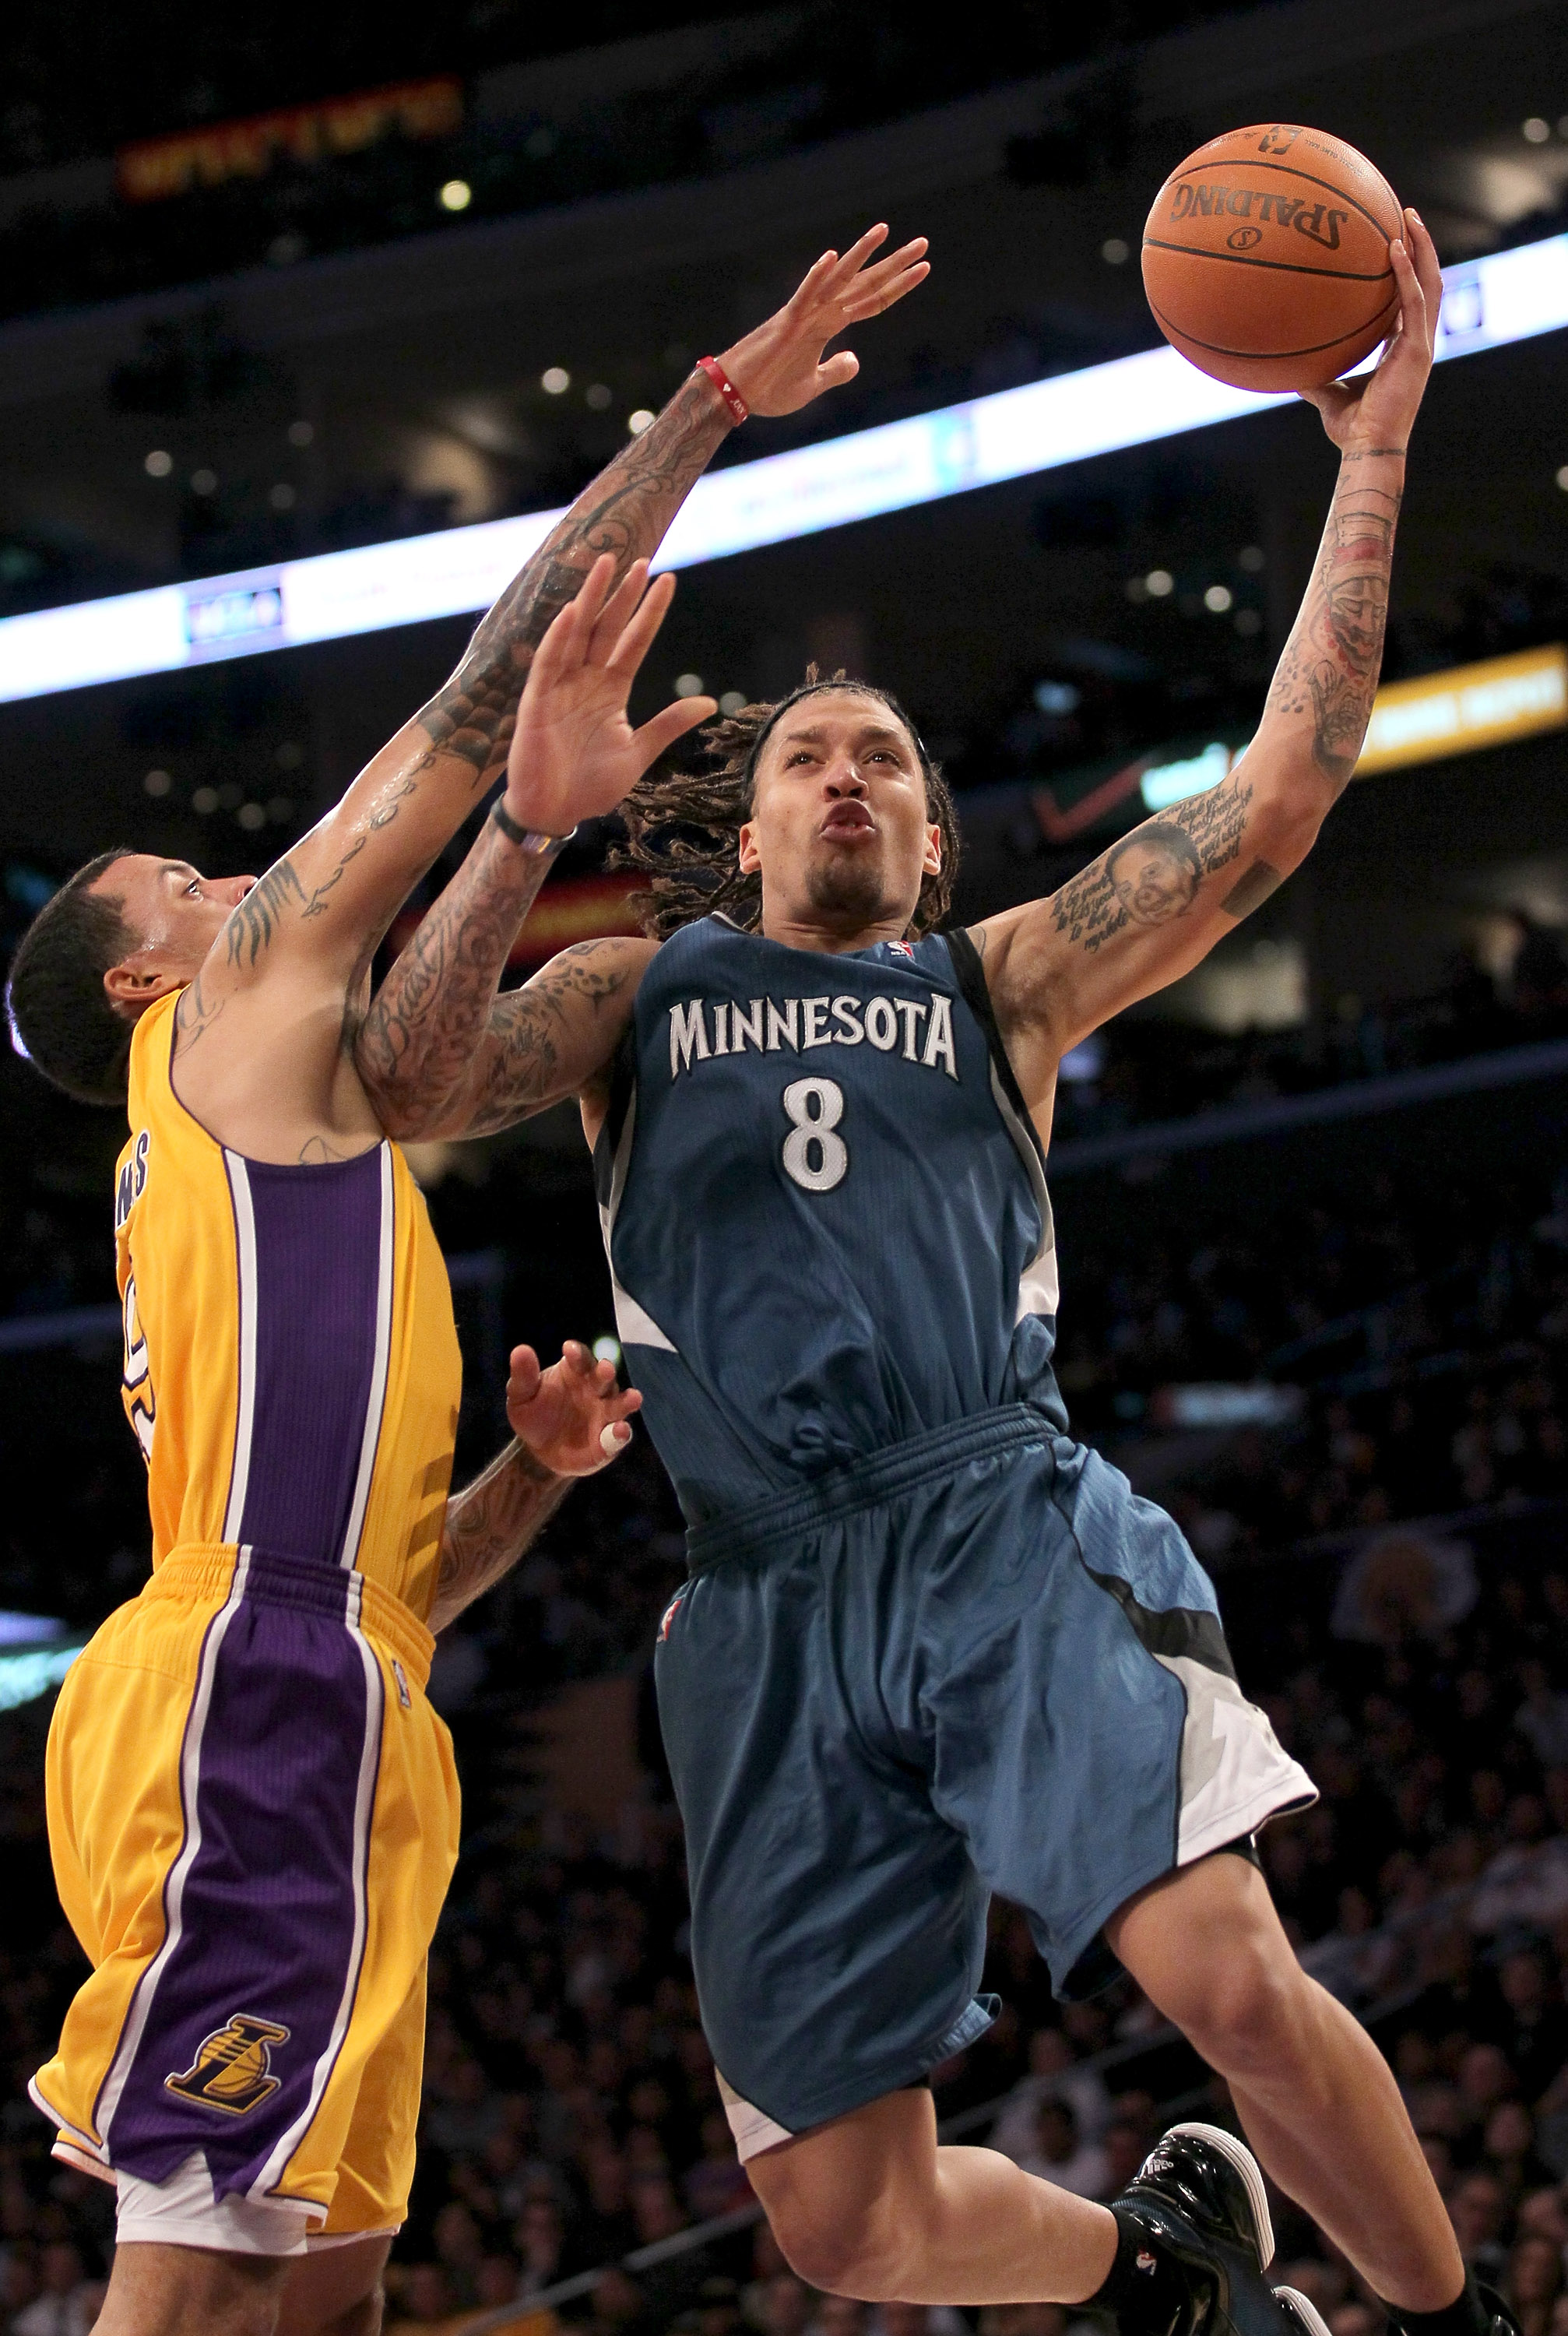 LOS ANGELES - NOVEMBER 9: Michael Beasley #8 of the Minnesota Timberwolves goes up for a shot against Matt Barnes #9 of the Los Angeles Lakers at Staples Center on November 9, 2010 in Los Angeles, California. The Lakers won 99-94.   NOTE TO USER: User exp